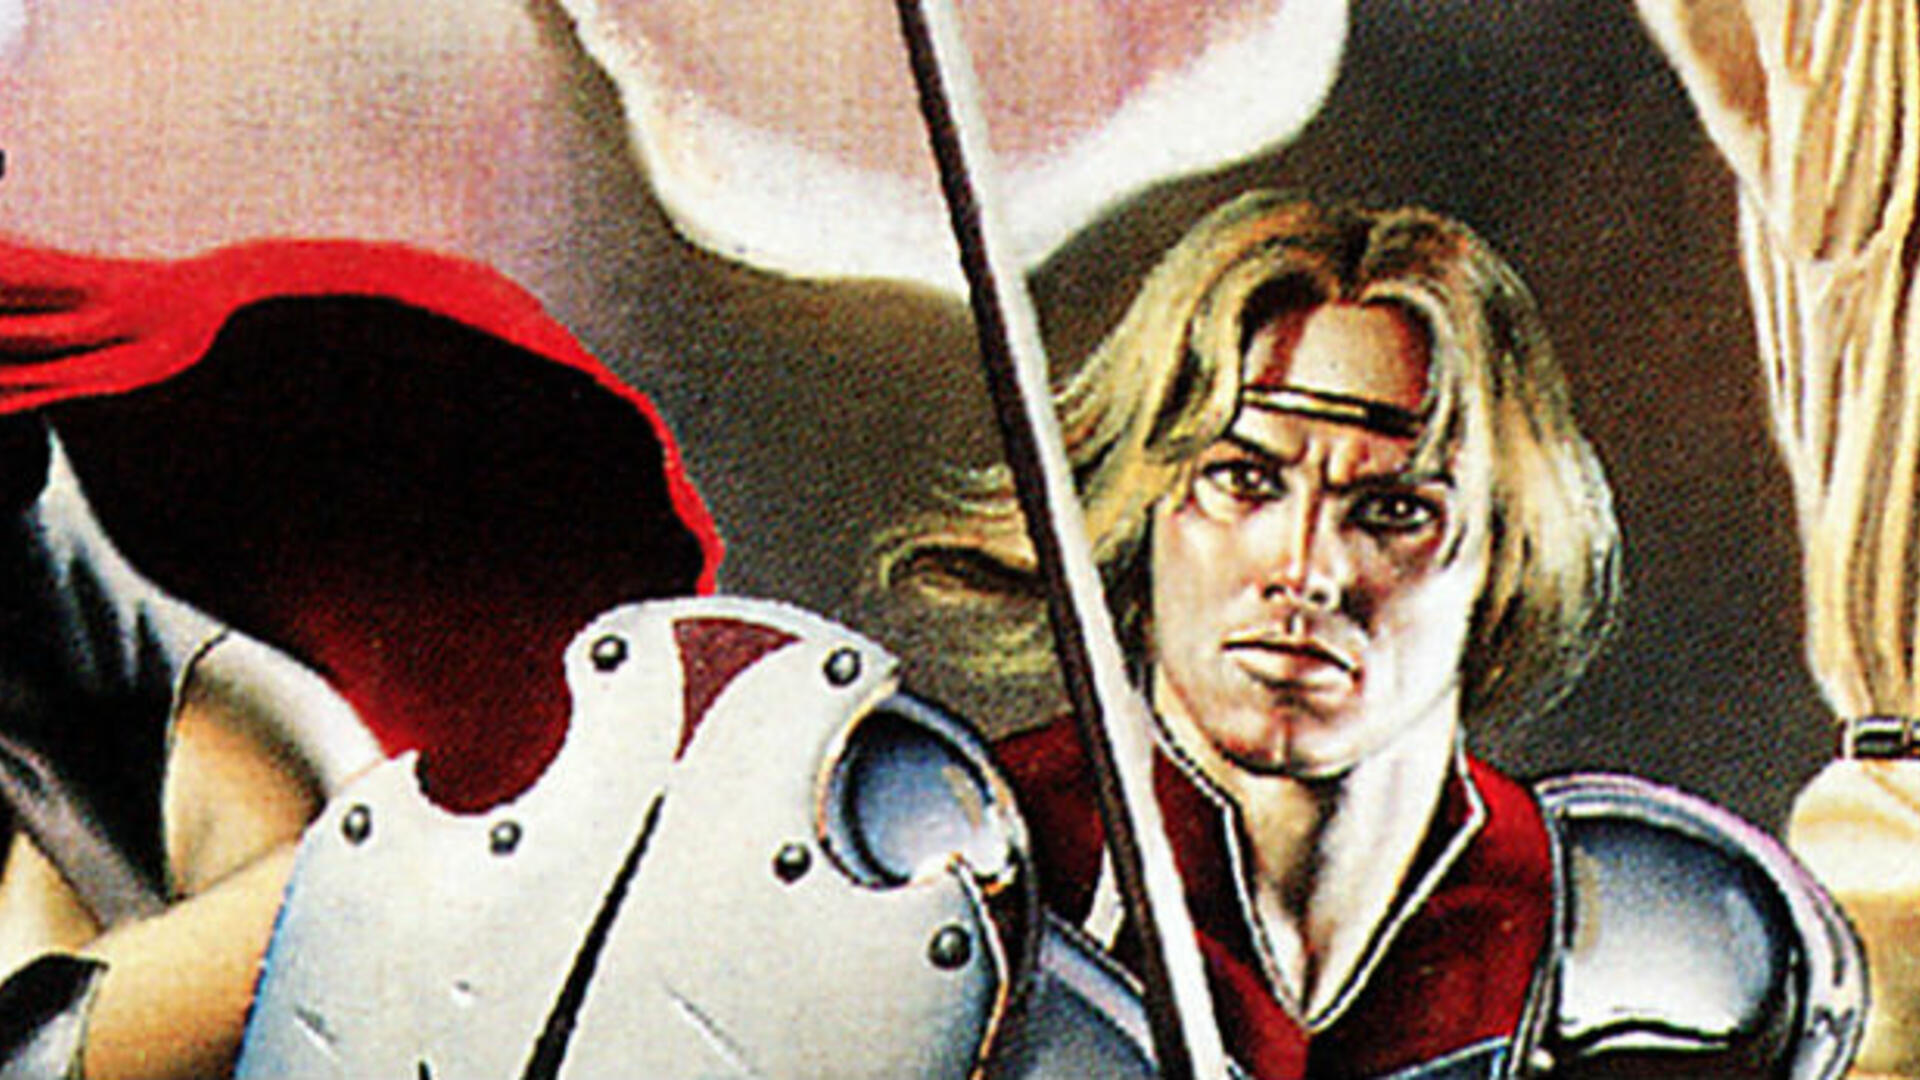 The Top 25 RPGs of All Time #19: Phantasy Star IV: The End of the Millennium